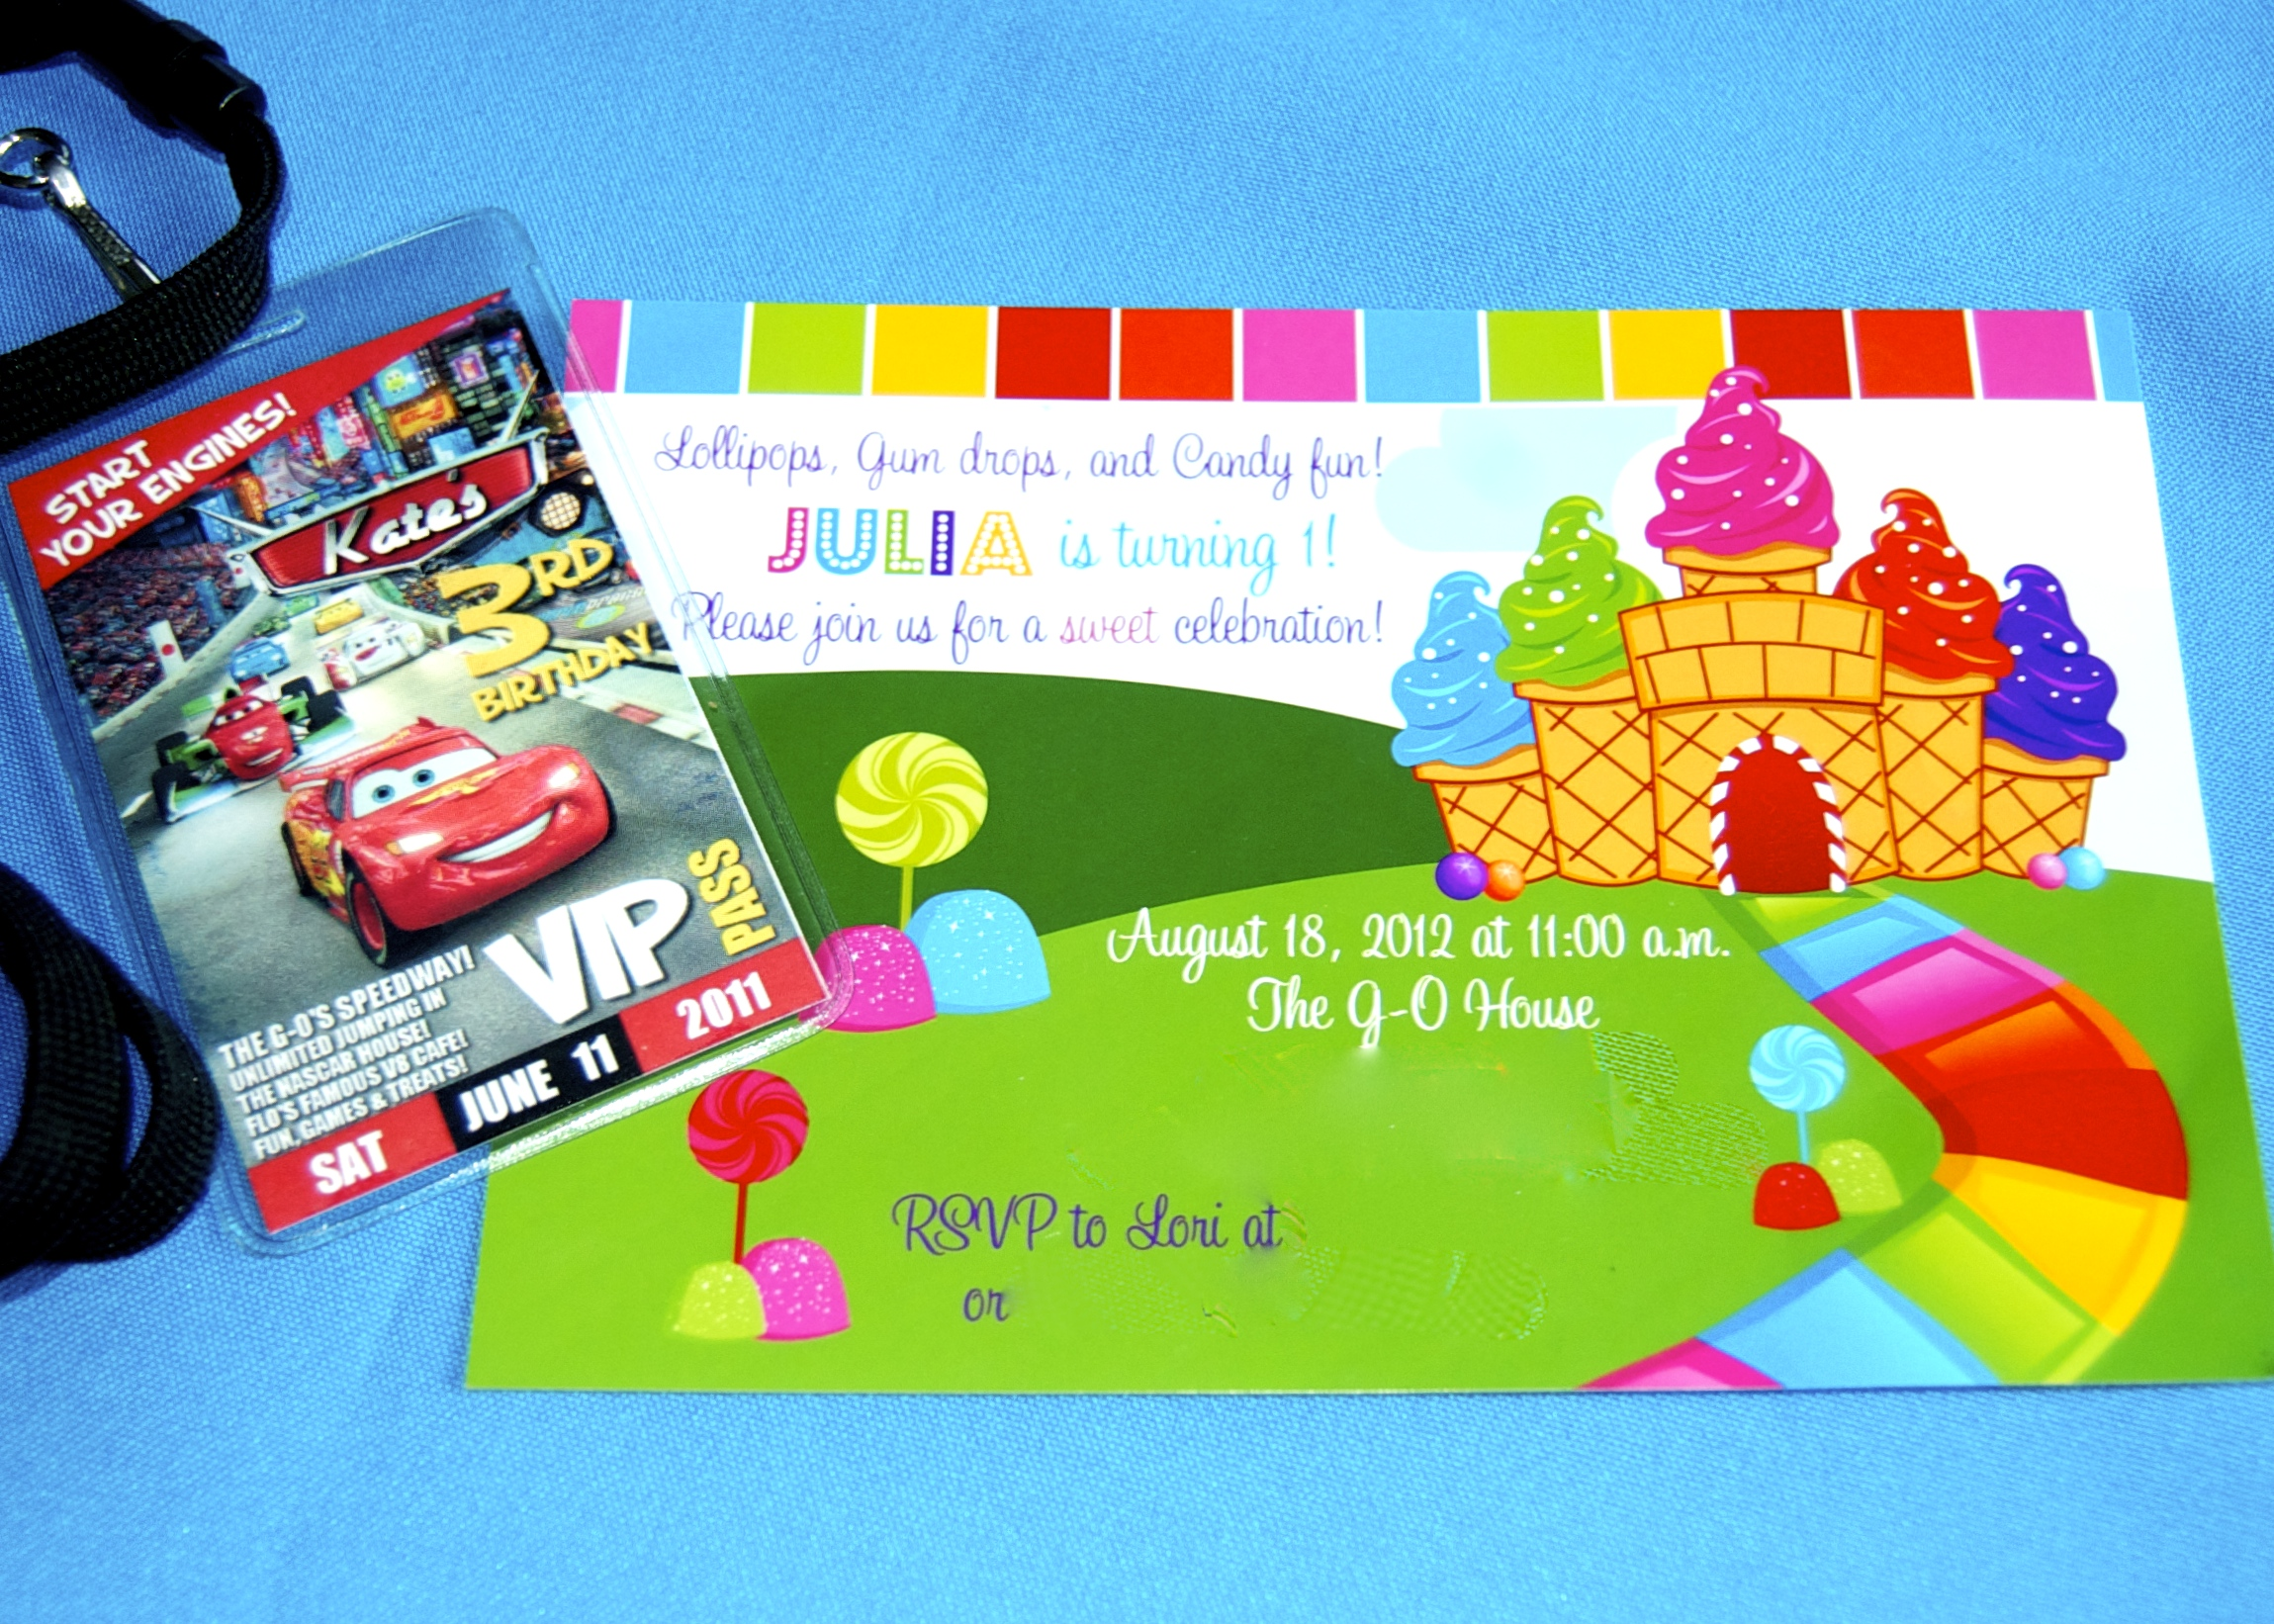 Cars Party Invite from thatpartygirl shop and Candyland Party Invite from the  PrettyPartyCreations  shop, both on ETSY.